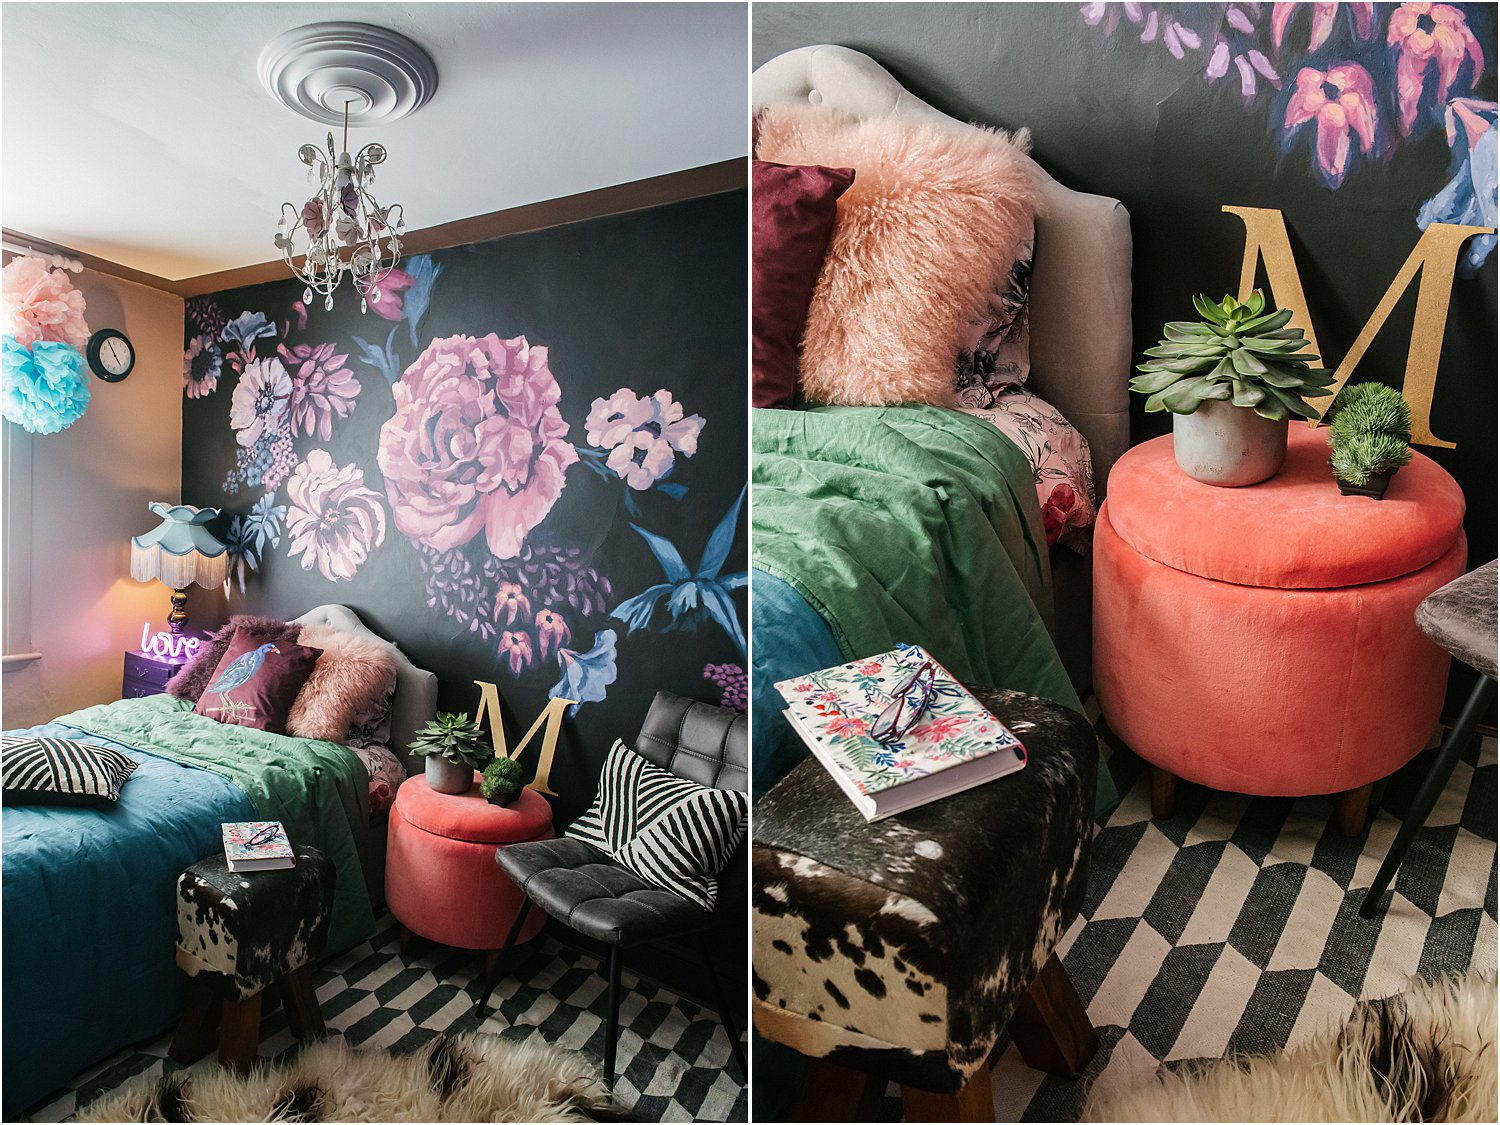 dps-how-to-style-interior-for-photoshoots-lily-sawyer-interior-design